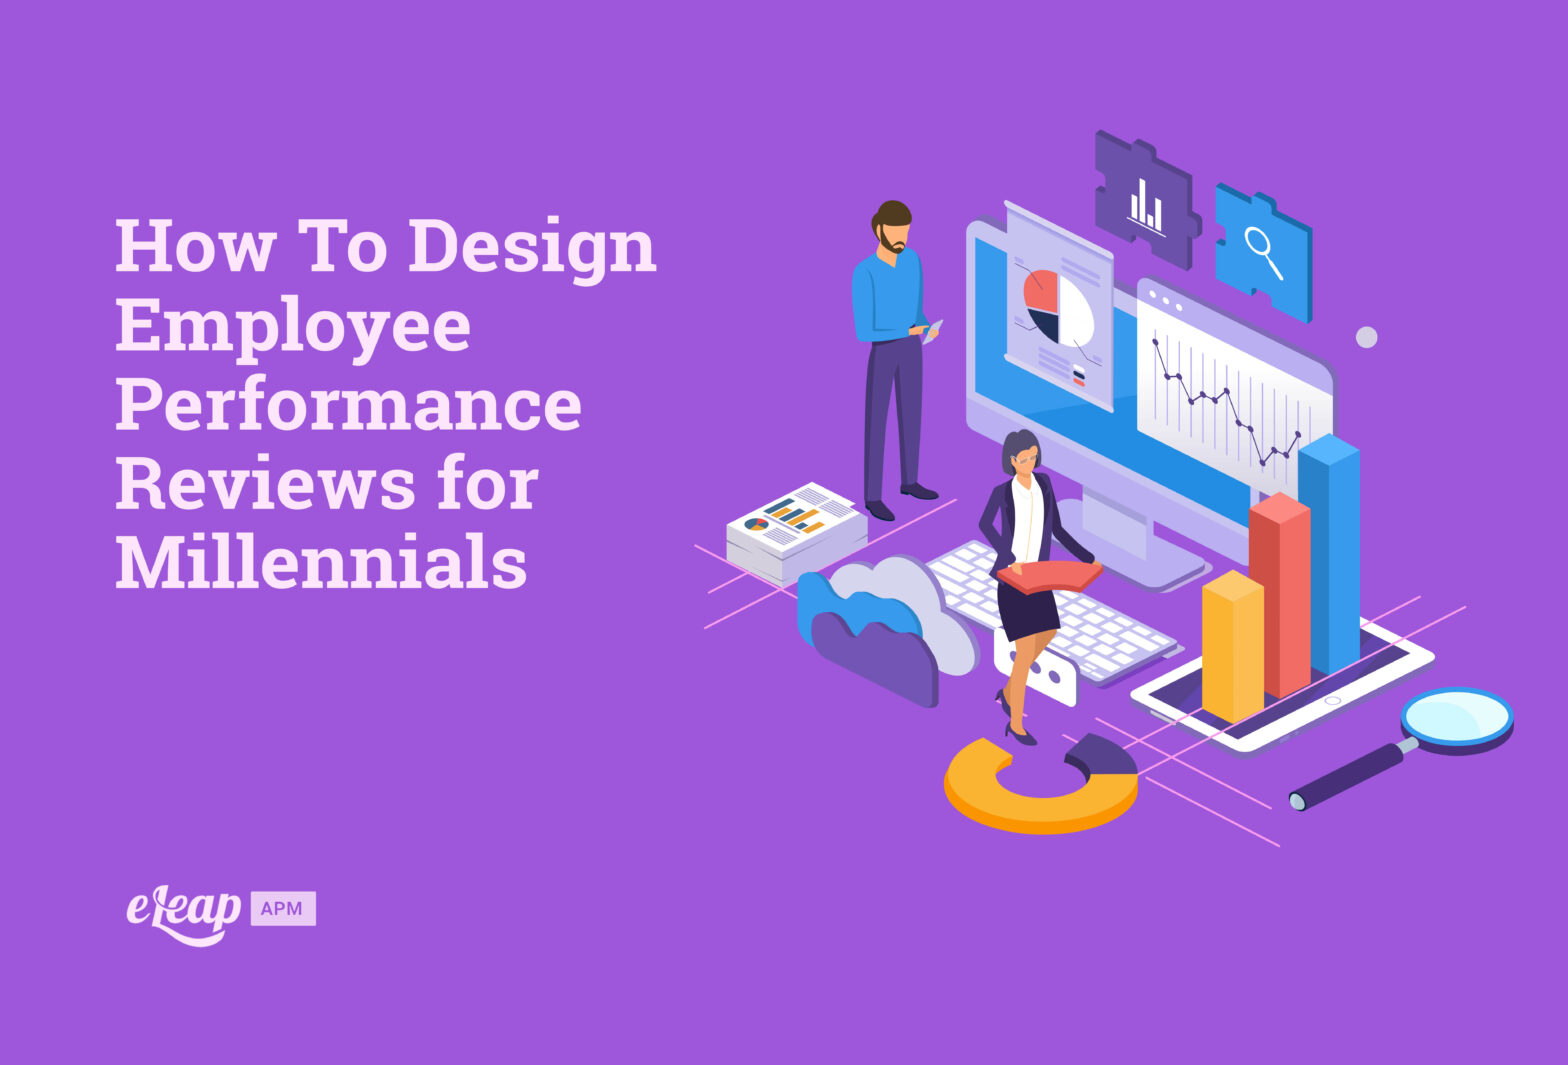 How To Design Employee Performance Reviews for Millennials